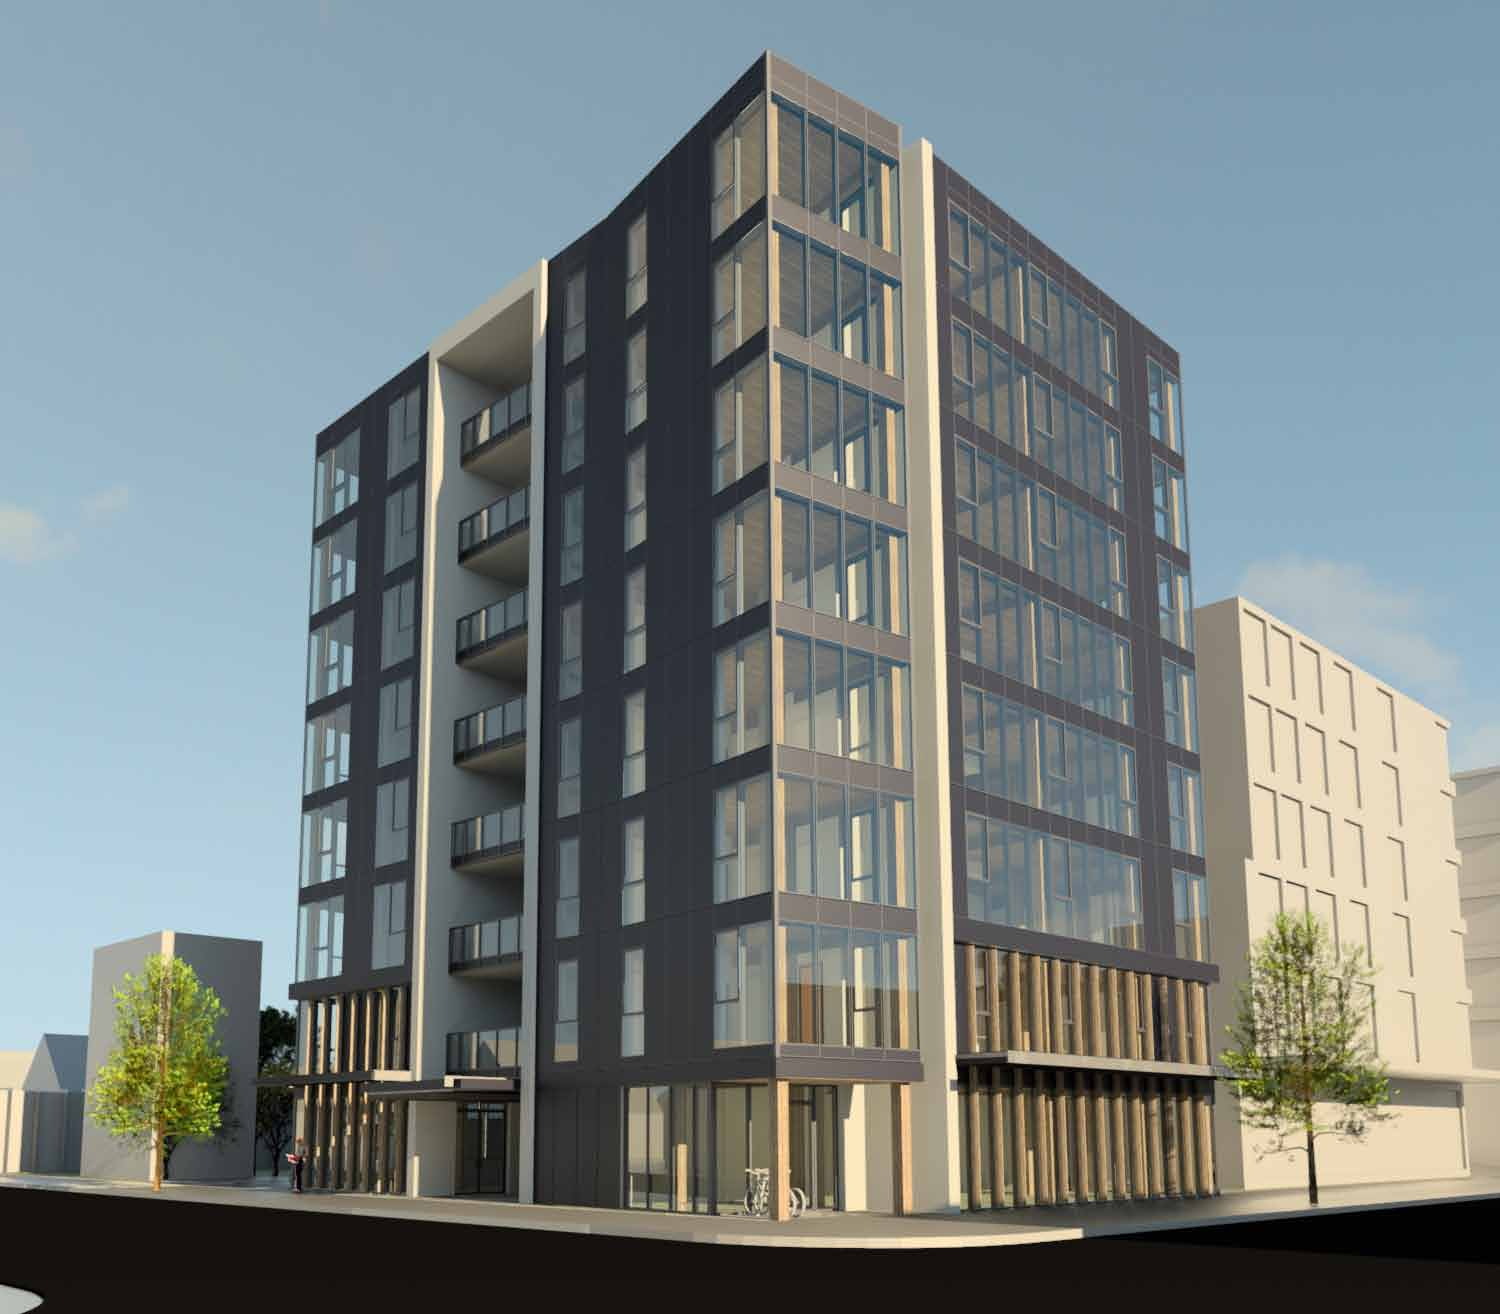 Garage With Apartments Design Approved For First Tall Cross Laminated Timber